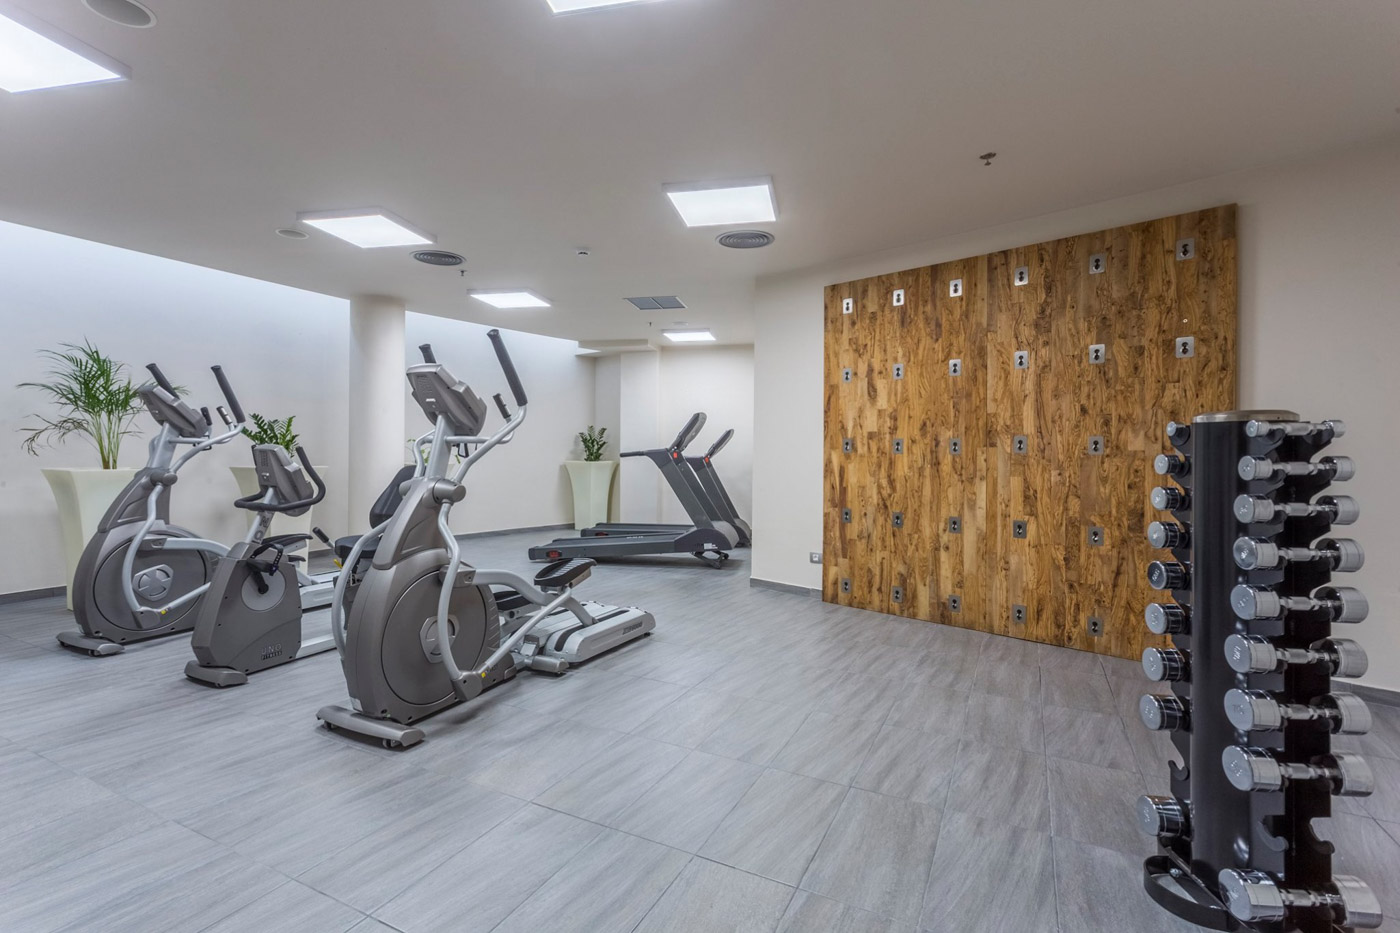 Elysian luxury hotel and spa Kalamata fitness equipment